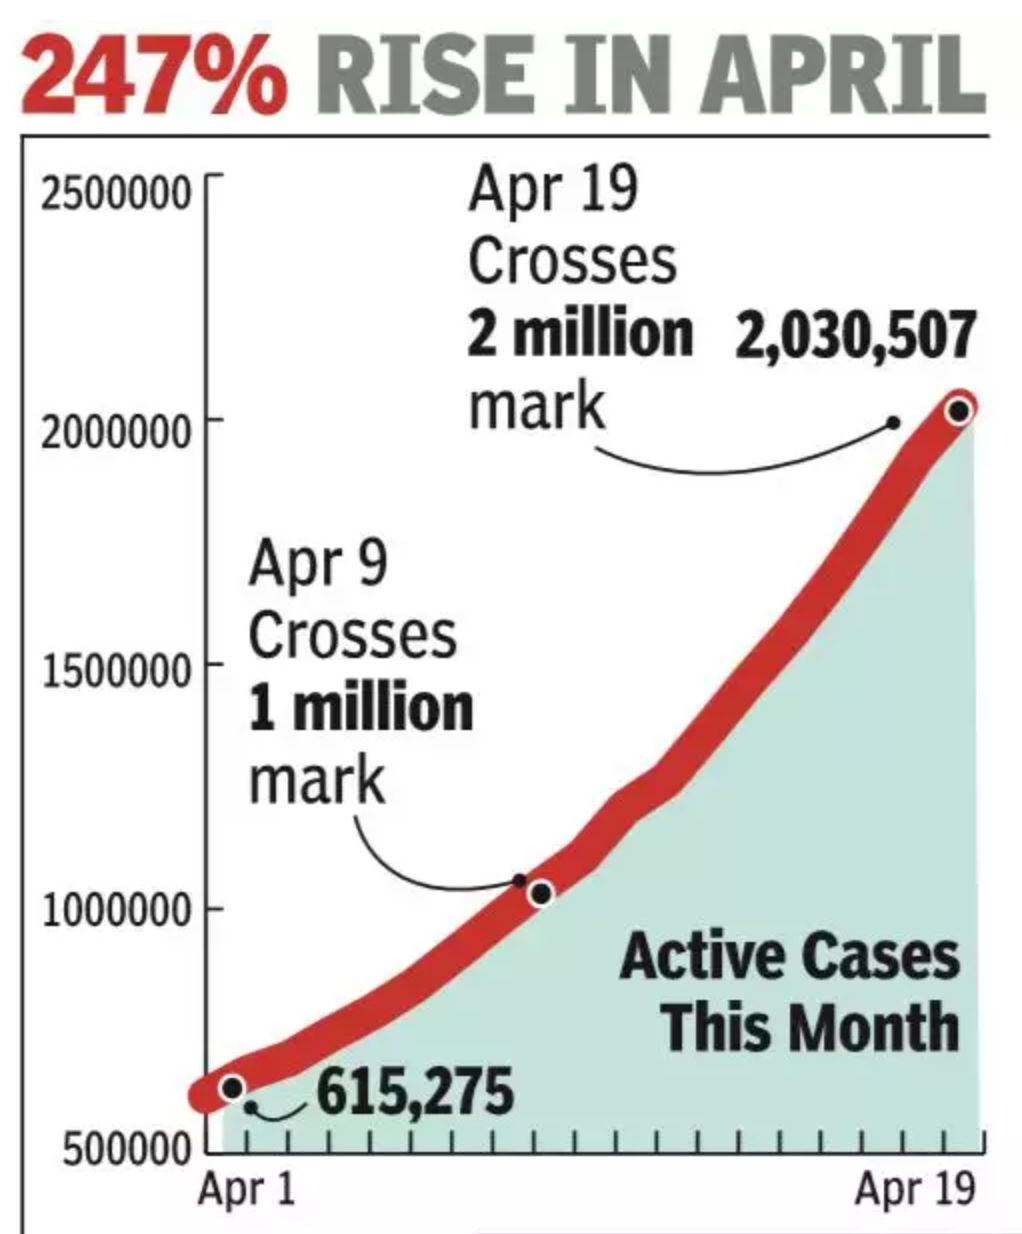 India's active cases double in 10 days, cross 20L—most after US